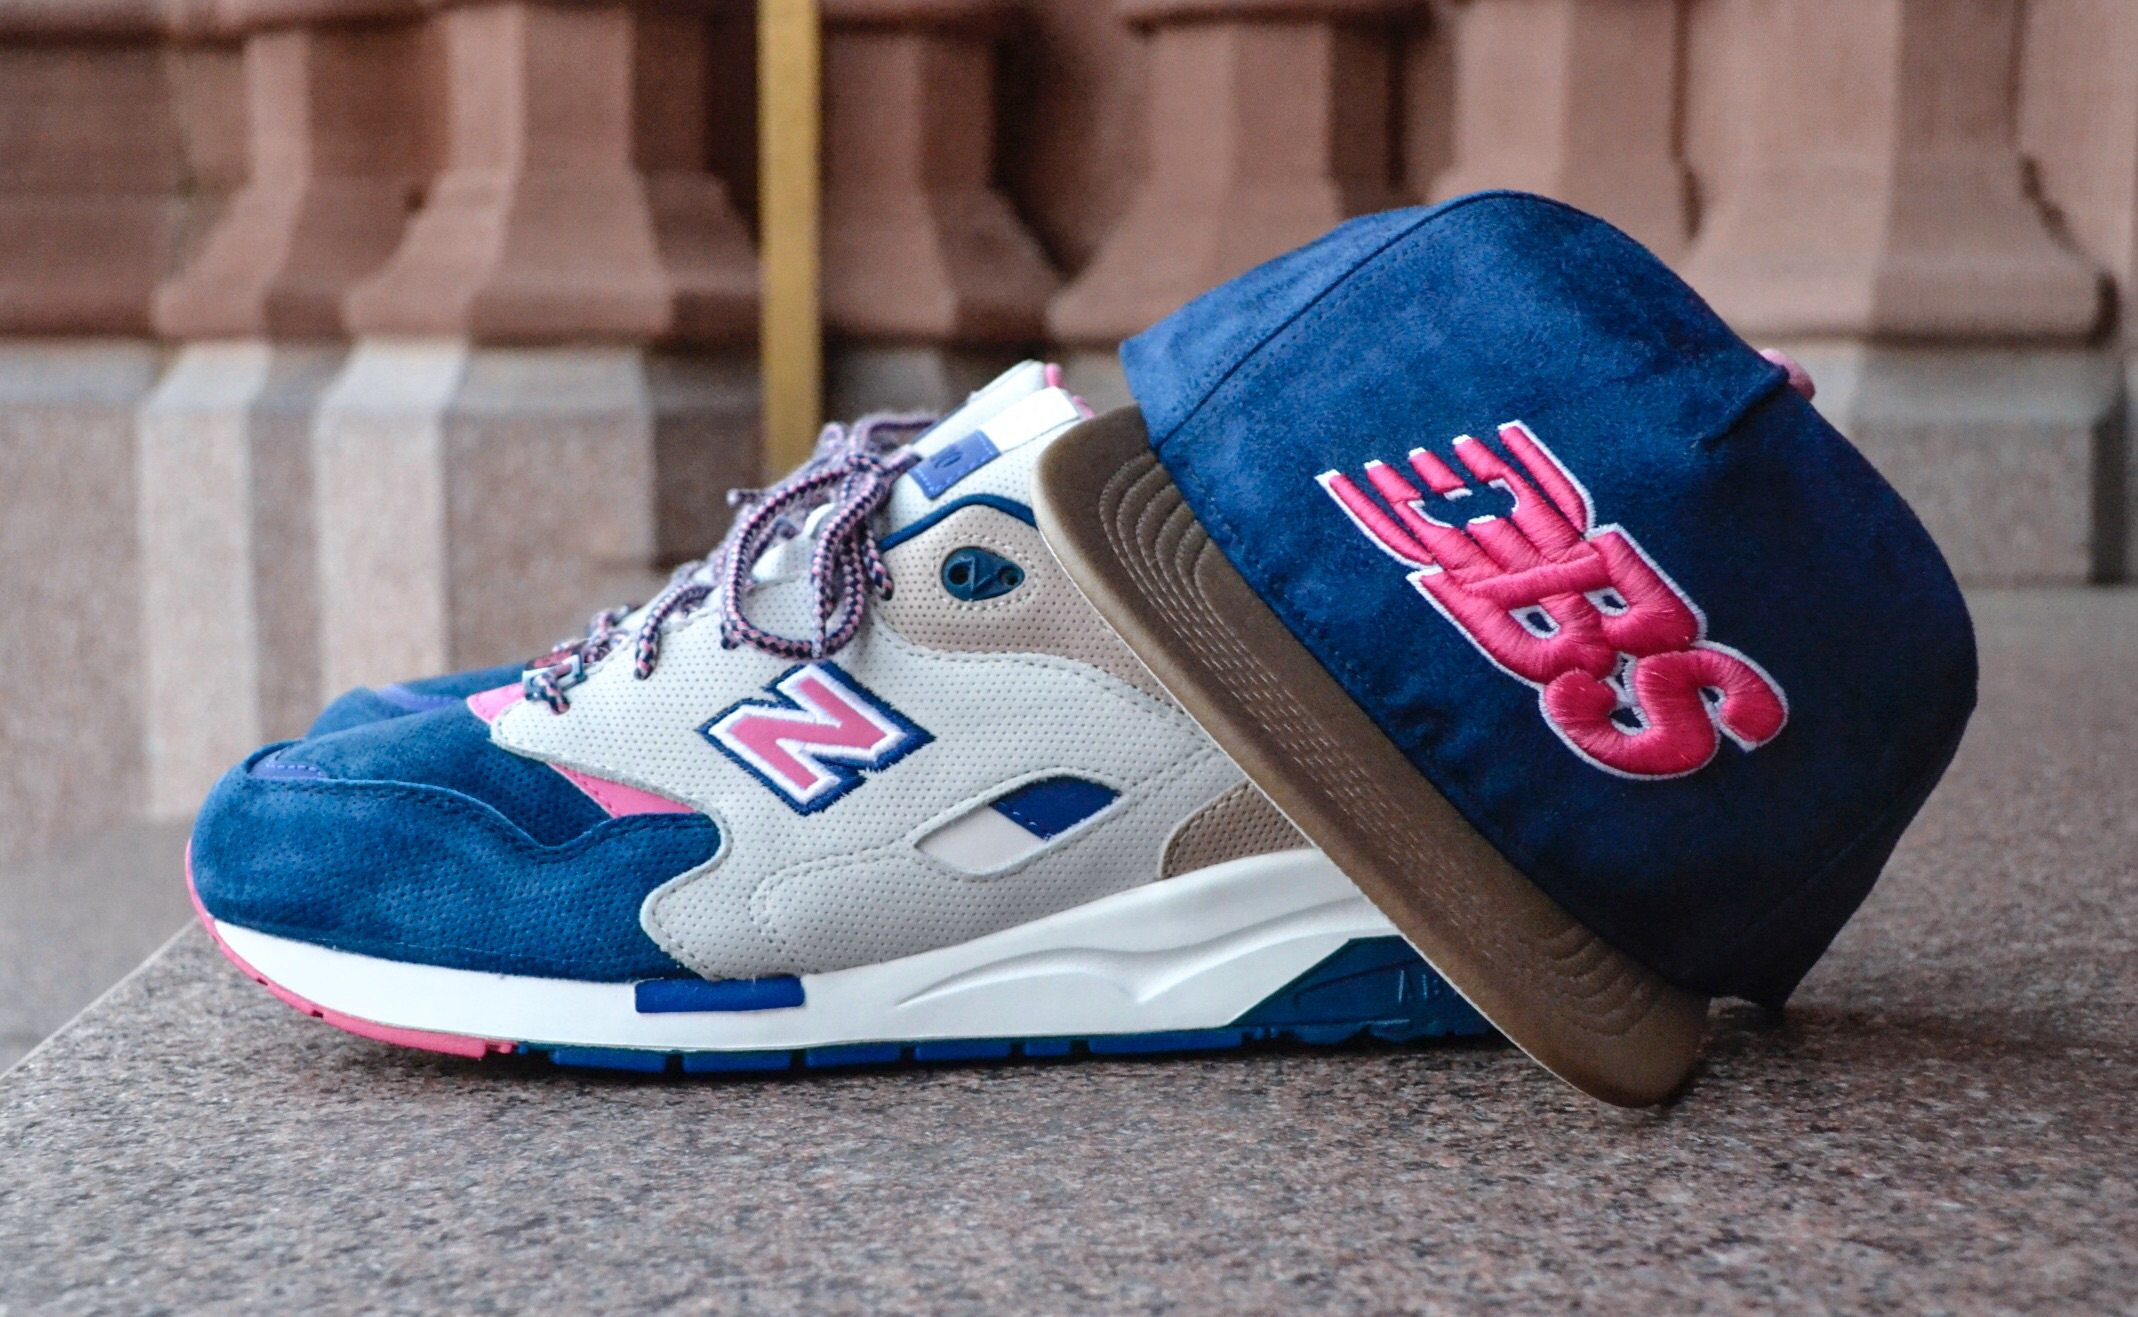 """The DBS """"Daytona"""" snapbackuses a mixture of Navy Suede andTan vinyl, along with pink and off-white accents to bring the """"Daytona"""" theme to life."""